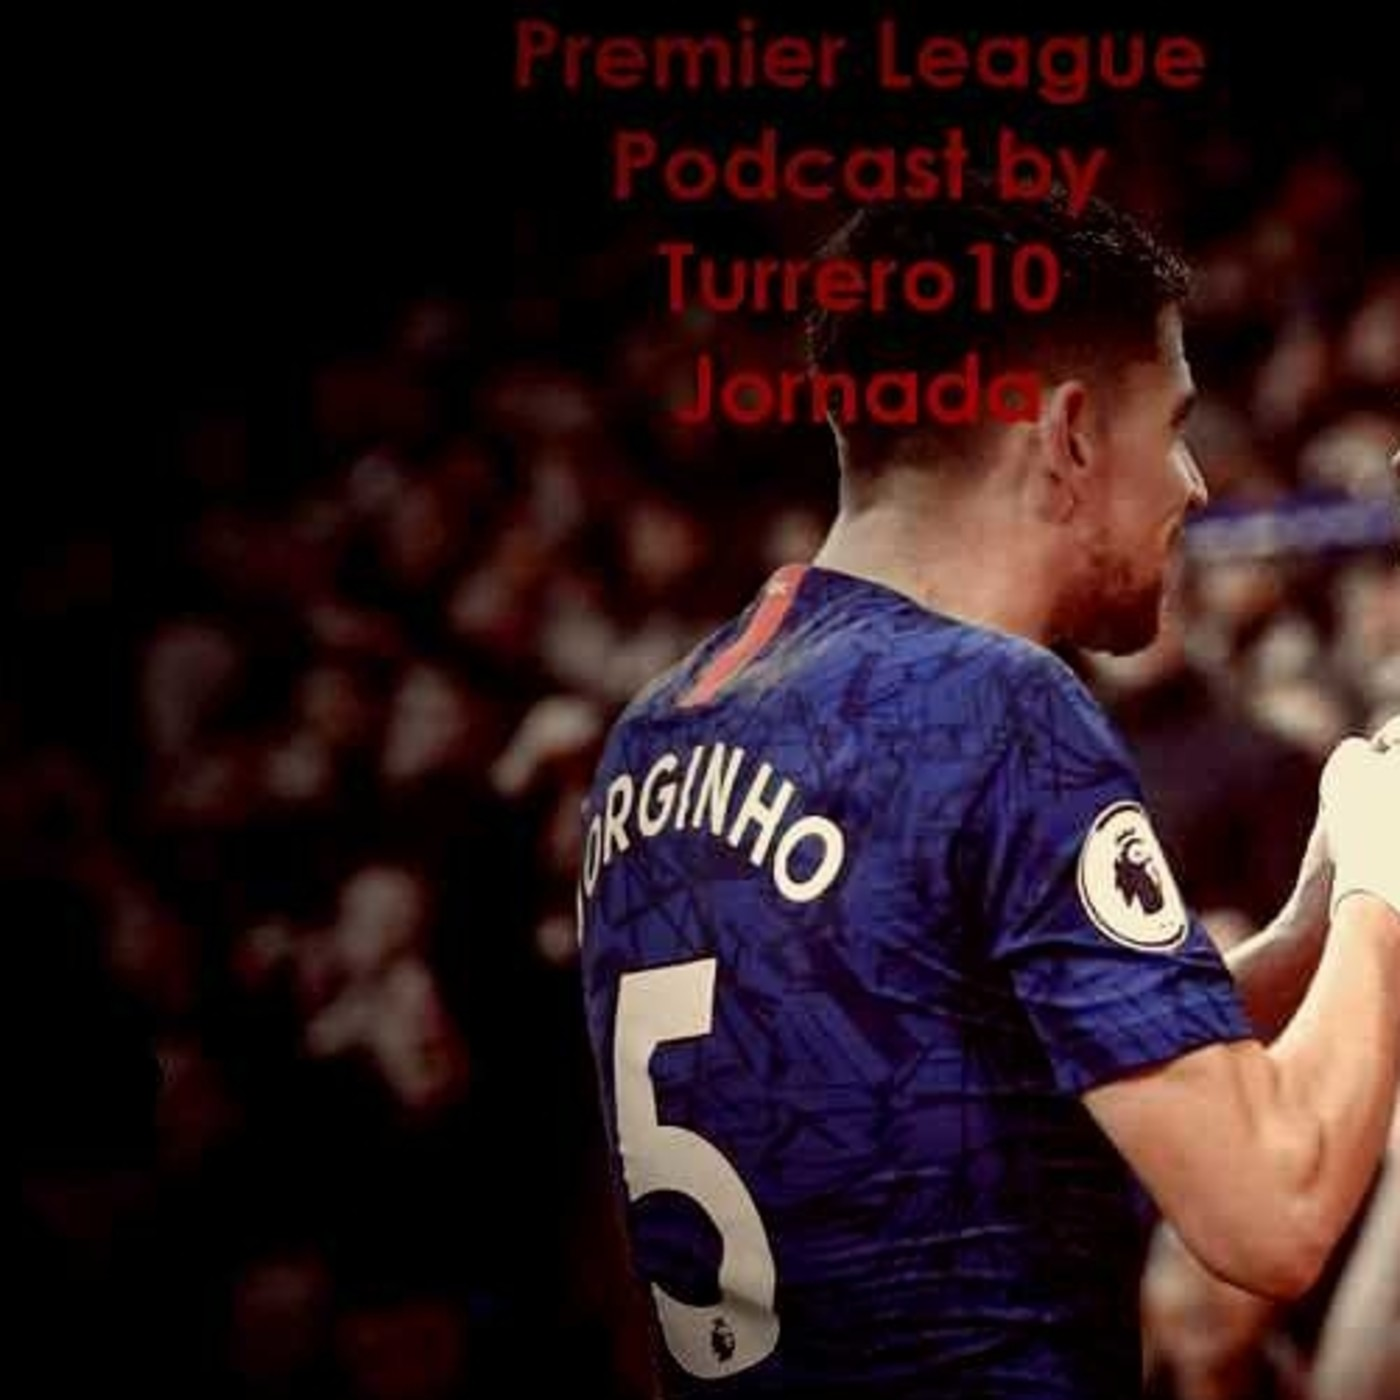 Premier League Podcast by Turrero10 Jornada5